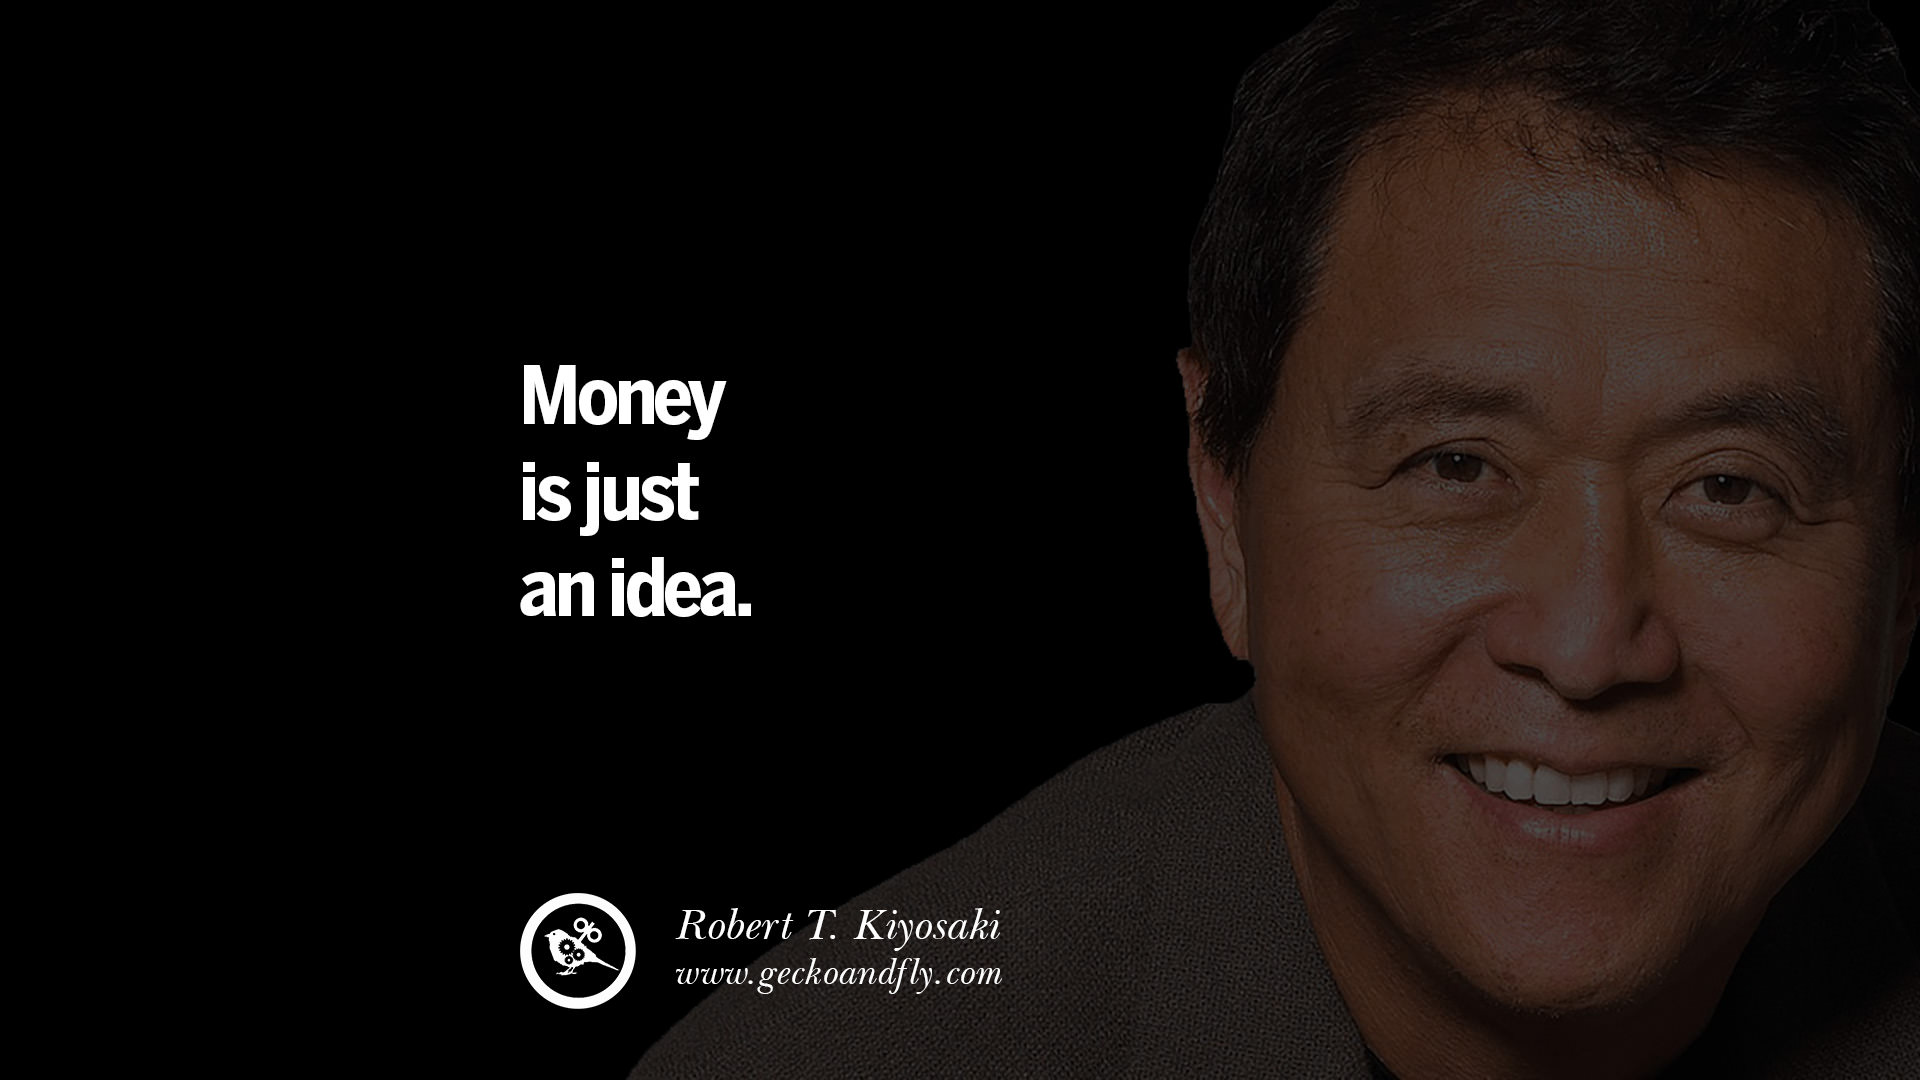 60 Motivational Robert T. Kiyosaki Quotes For Selling Amway ... on bugatti quotes, morgan quotes, rolls royce quotes, excalibur quotes, mercedes quotes, como quotes, drop quotes, maserati quotes, evidence quotes, chrysler quotes, corvette quotes, man quotes, audi quotes, subaru quotes, ford quotes, peterbilt quotes, harley-davidson quotes, nissan quotes, vw quotes,